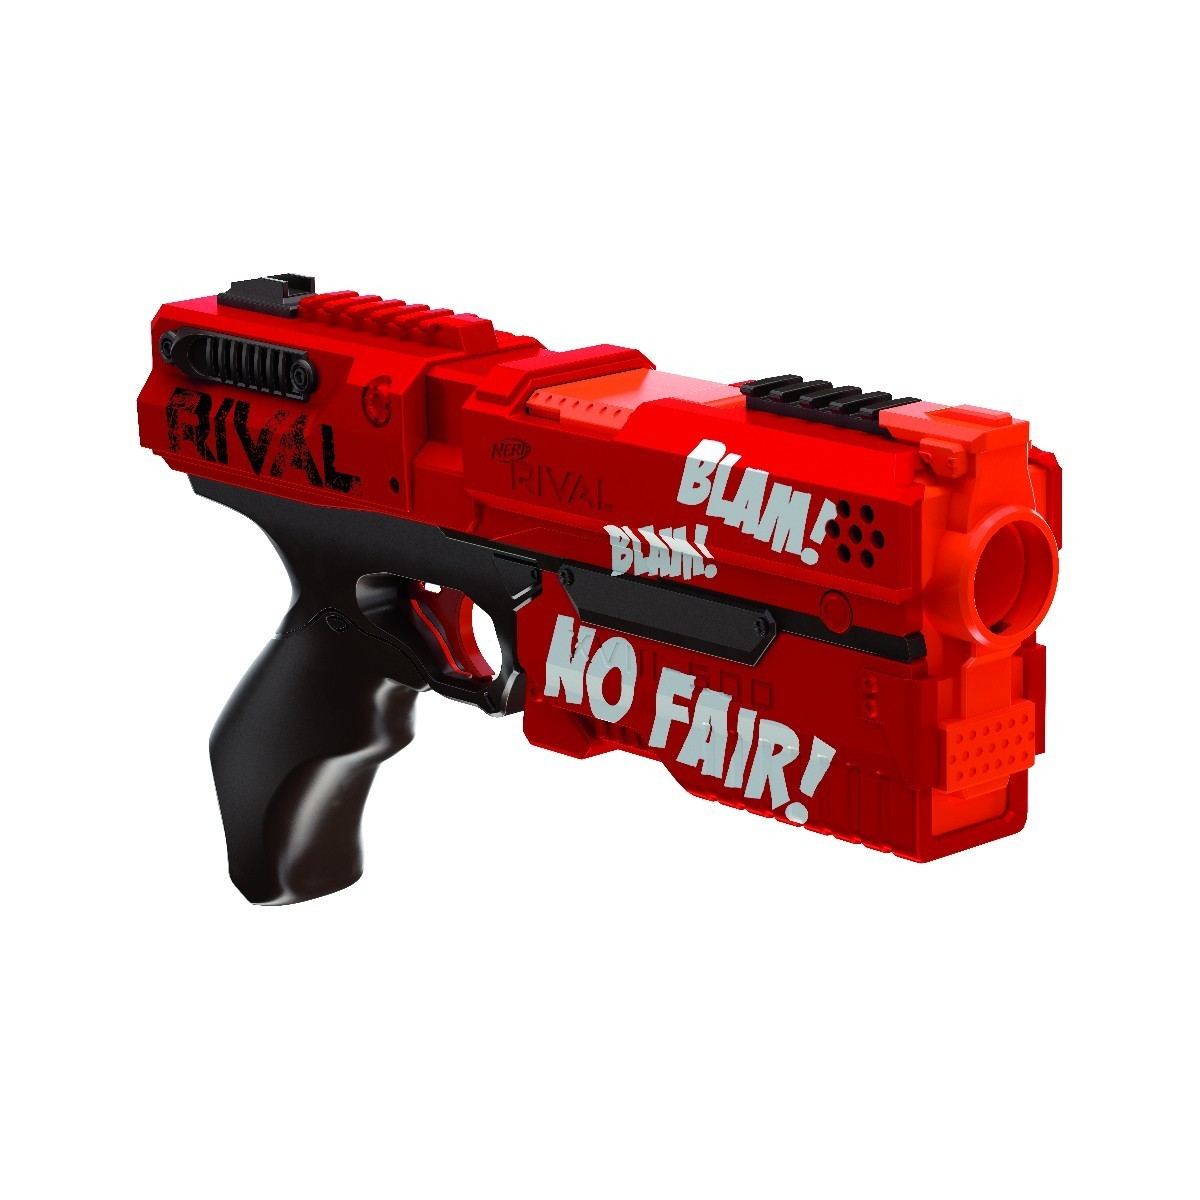 Nerf Rival Apollo XV-700 Blaster, Red